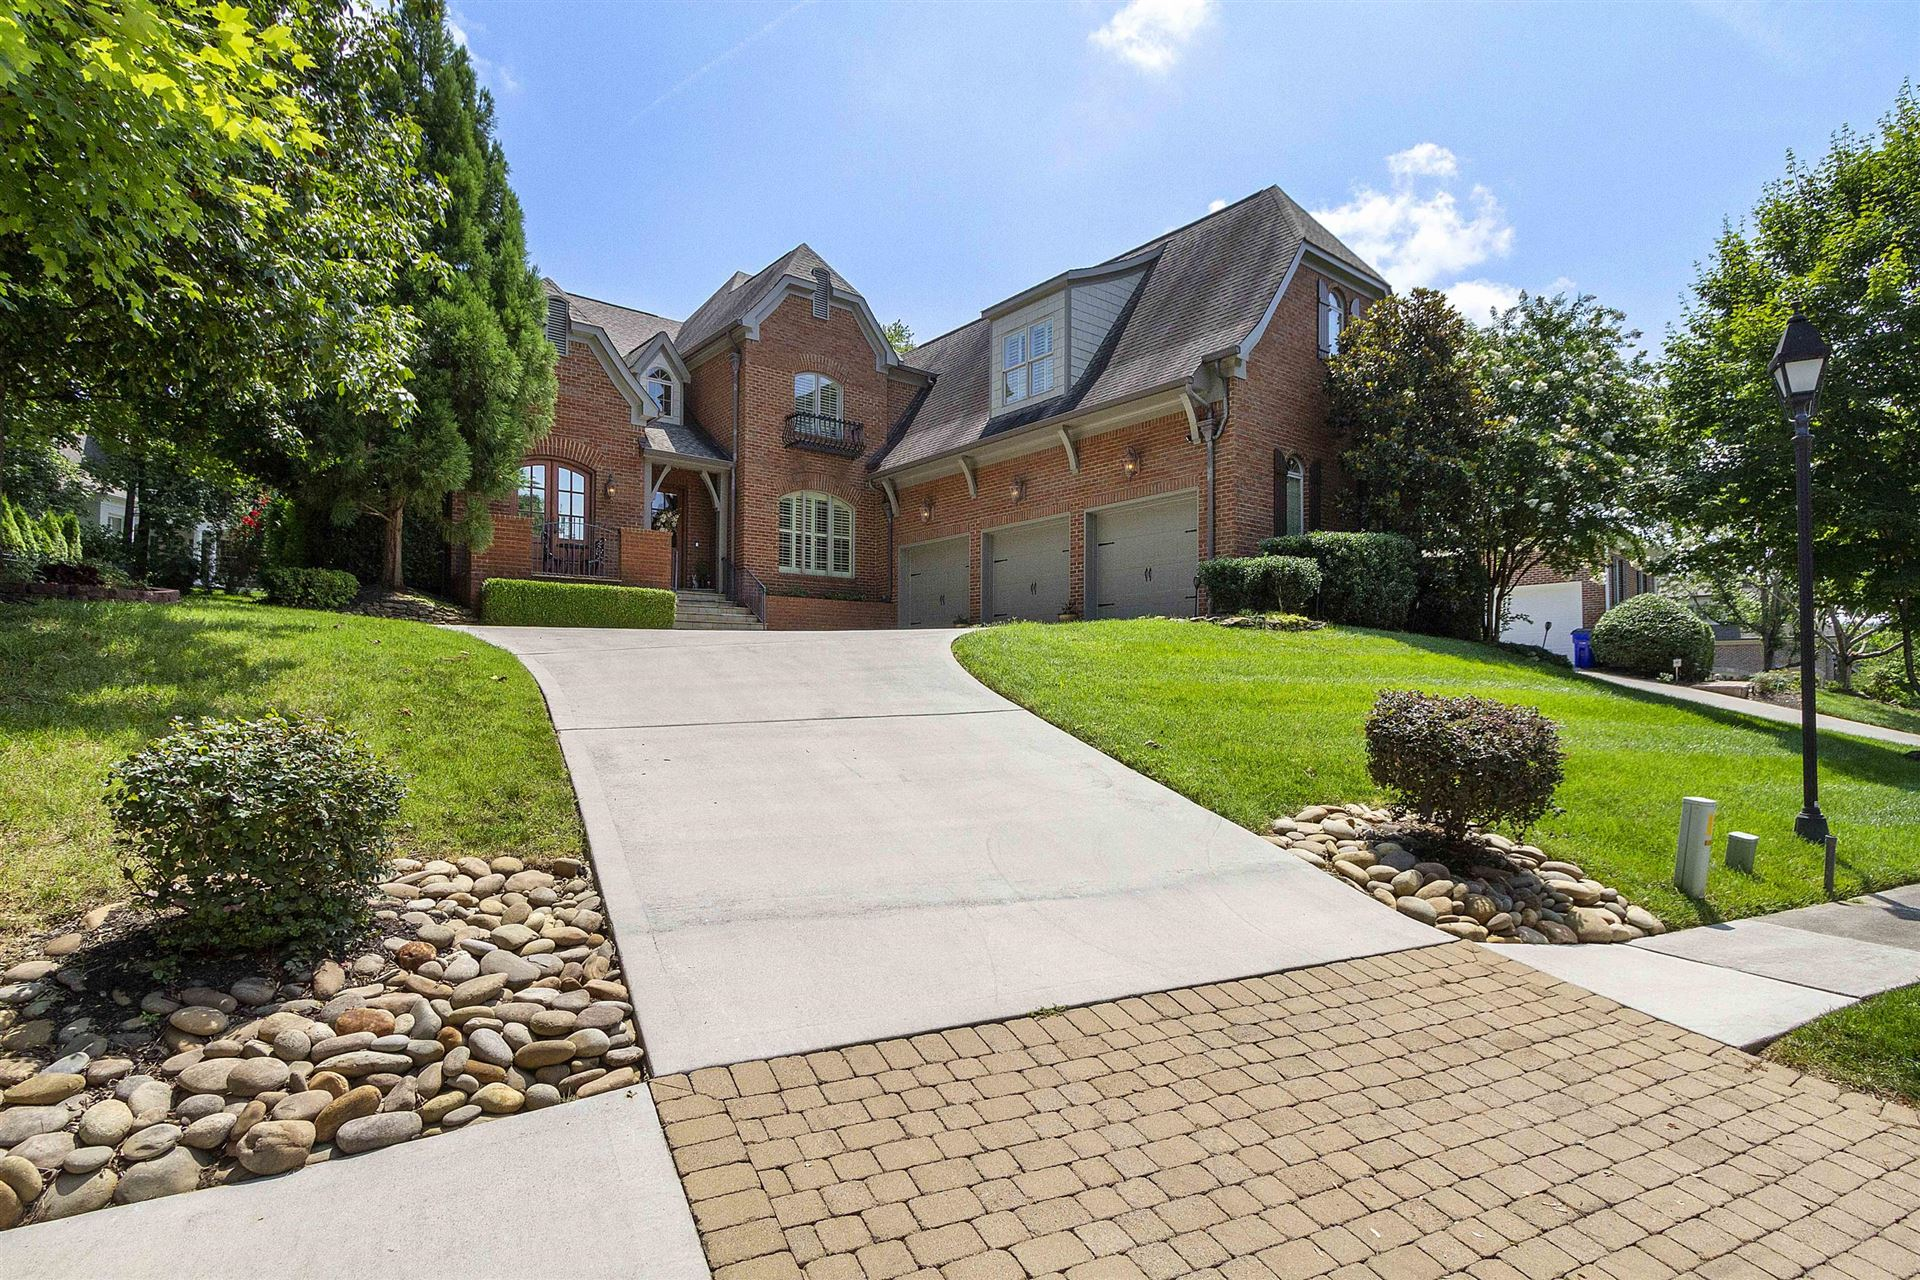 Photo of 834 Belle Grove Rd, Knoxville, TN 37934 (MLS # 1162092)